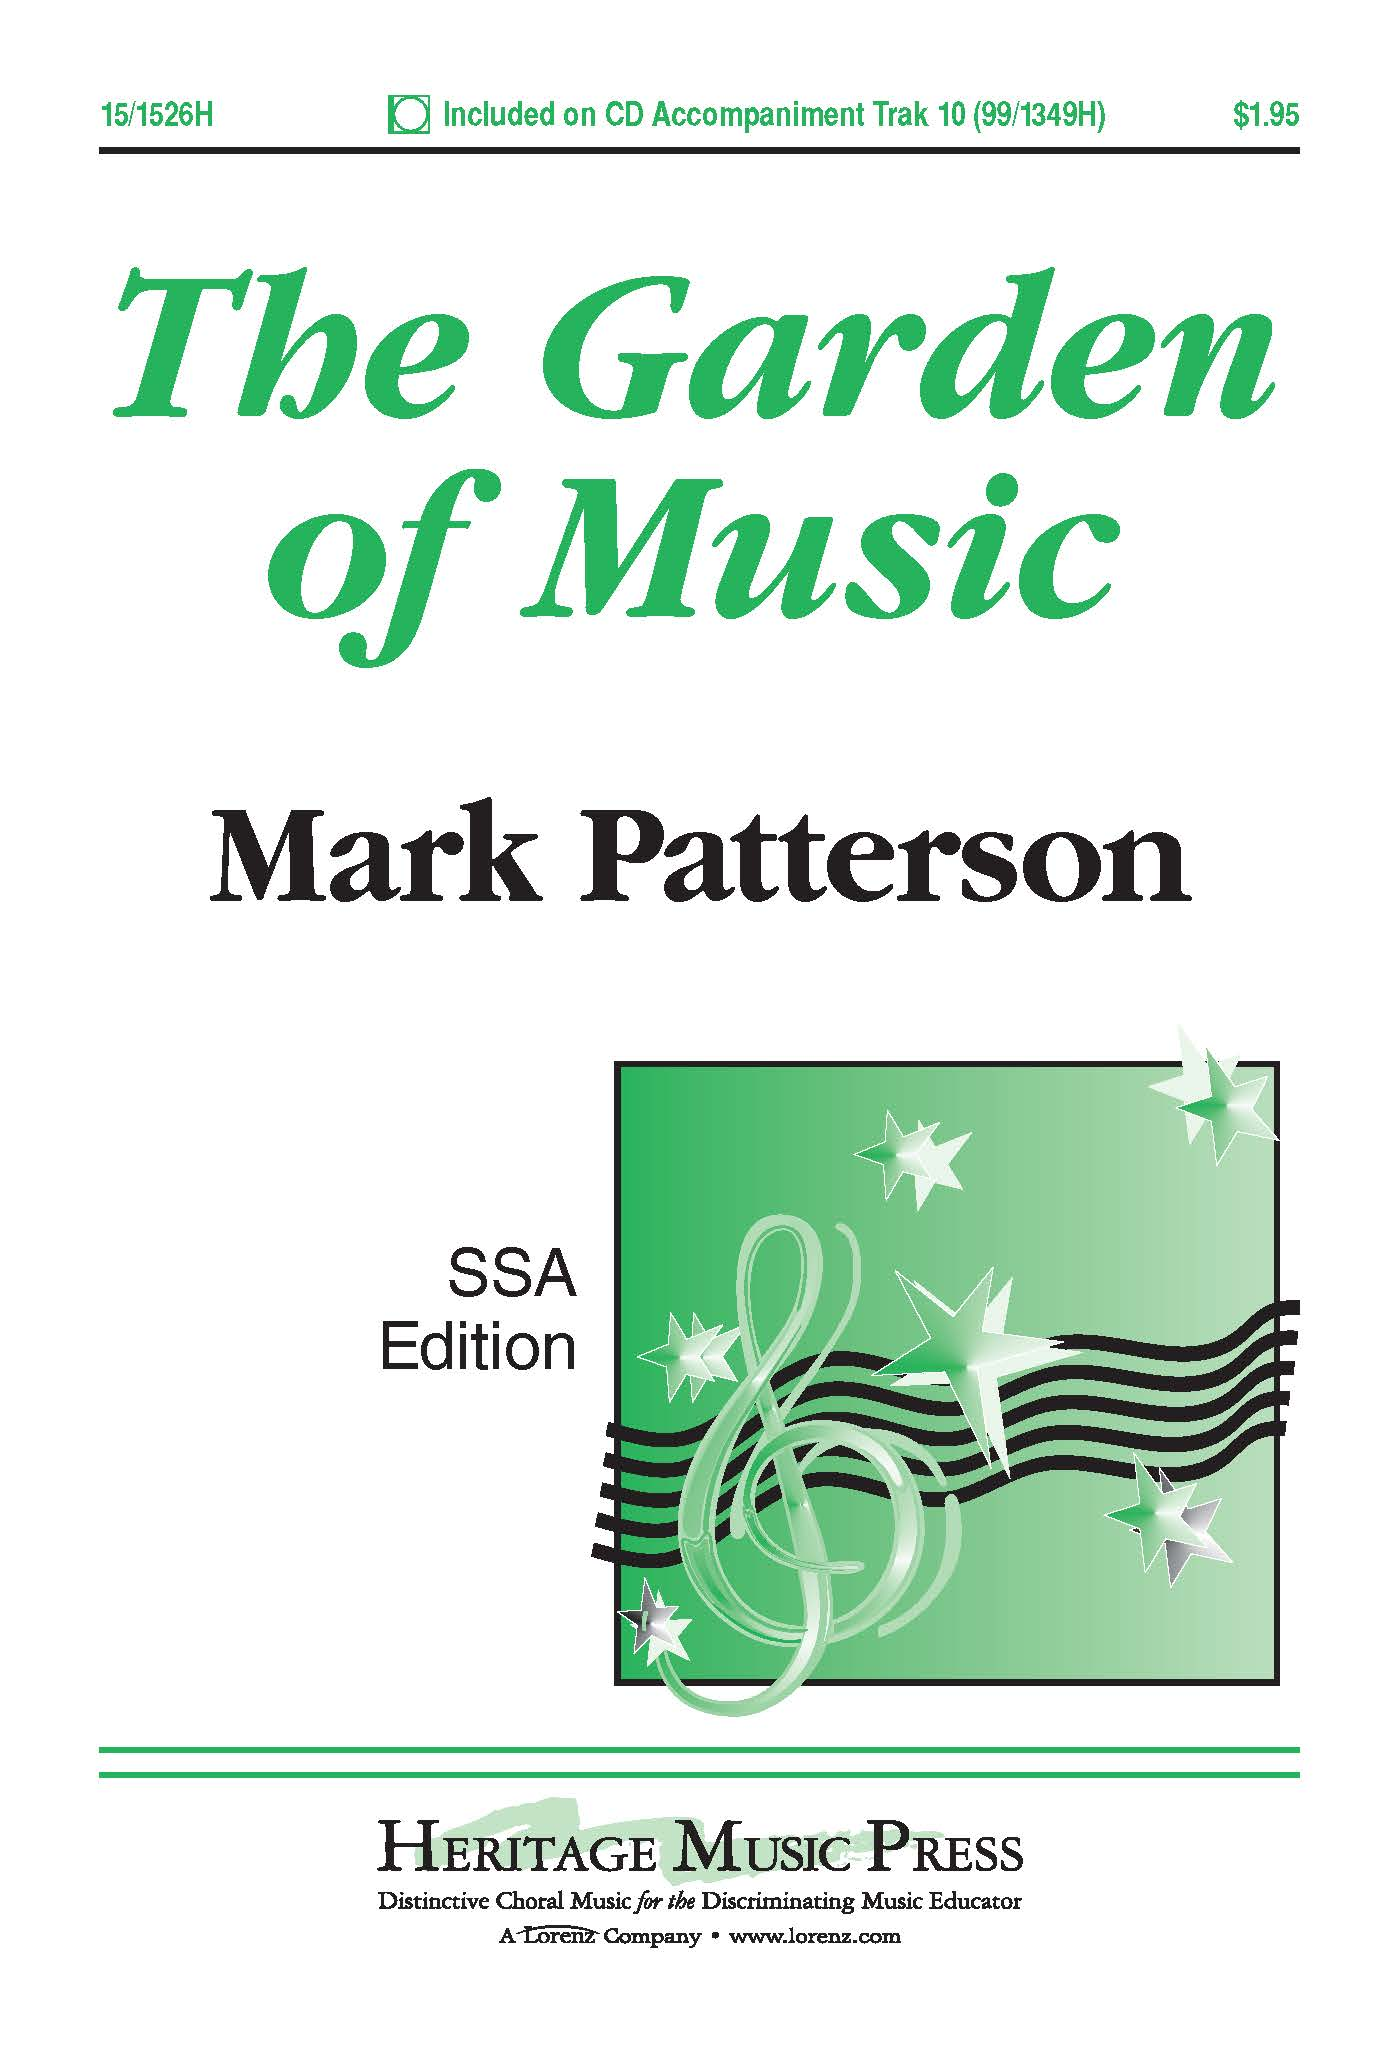 The Garden of Music